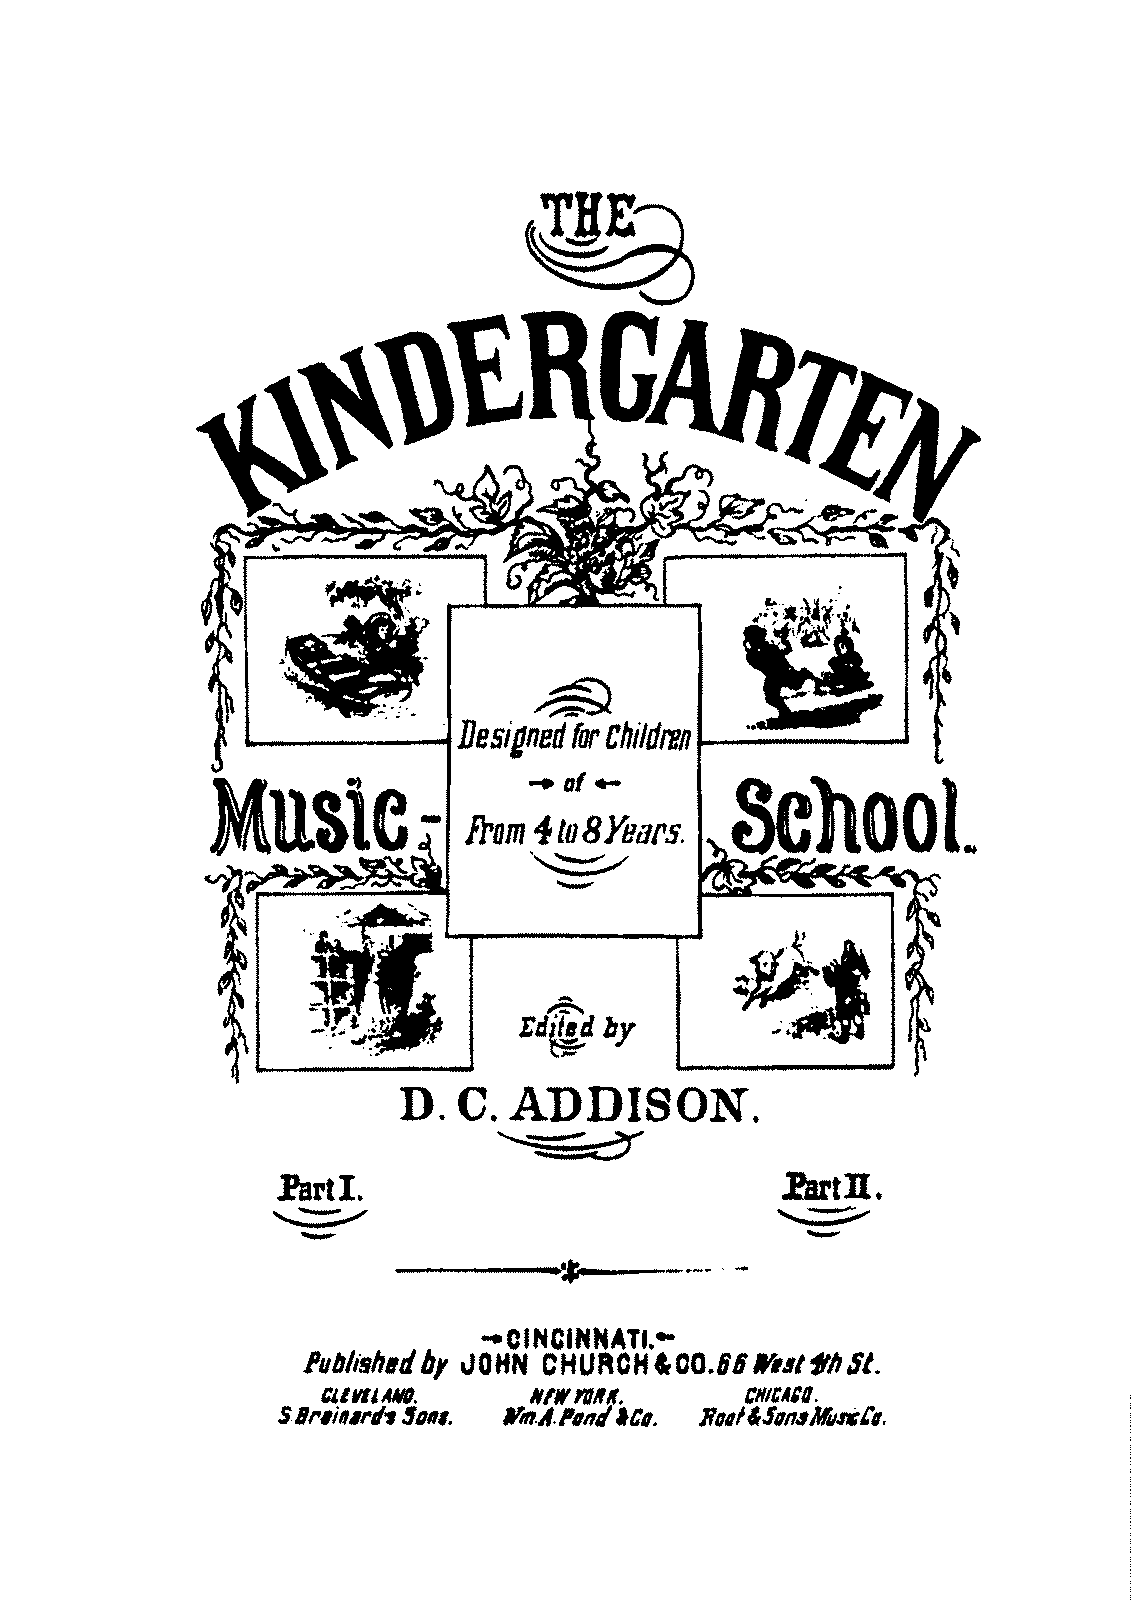 PMLP354646-Addison, D.C. - Kinder-Garten Music School - Pieces designed for 4 to 8 year old children Book II - C. 1881.pdf